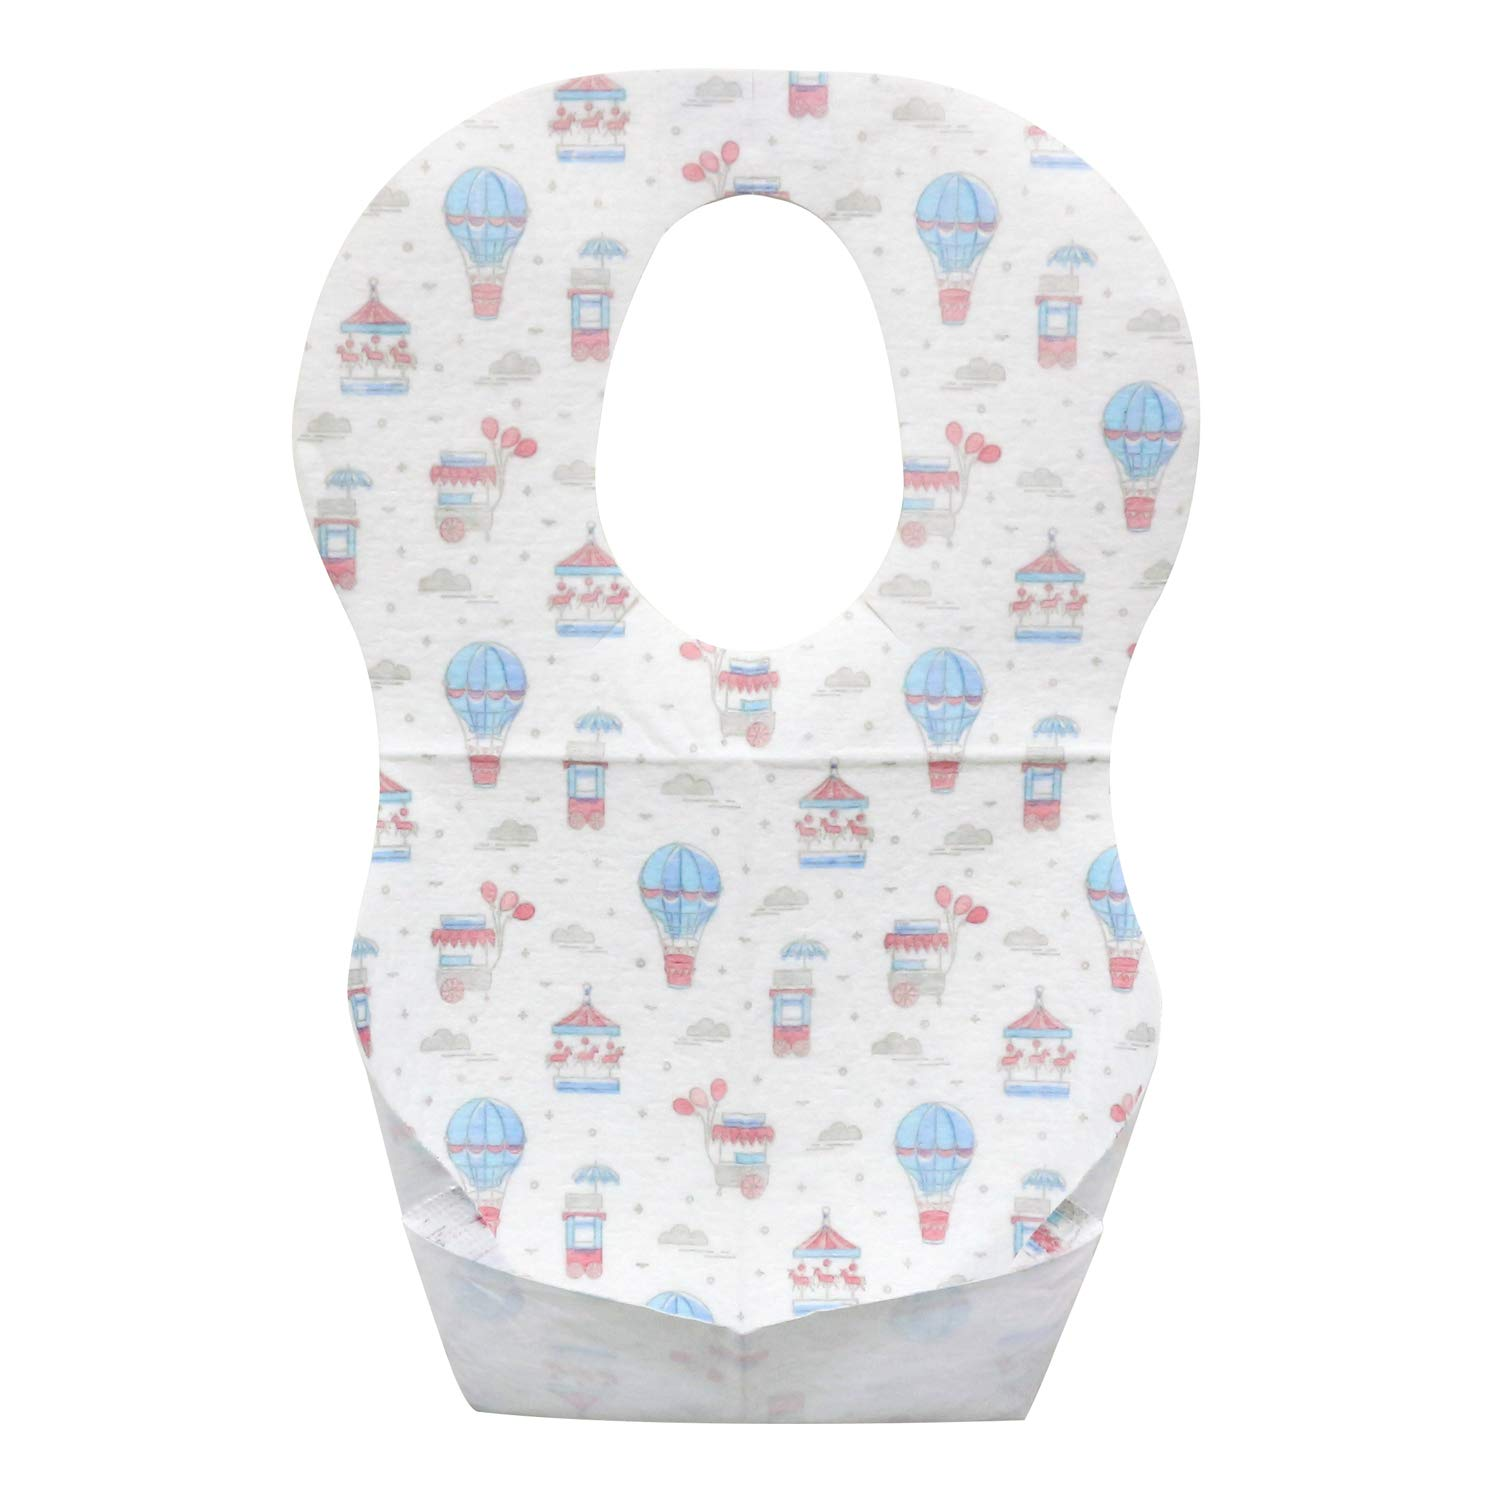 Emmzoe Baby and Infant Disposable Travel Bibs - Soft, Leakproof, Unisex, One Size Fits All - for Feeding, Traveling, On The Go - Amusement Park (50 Pack)